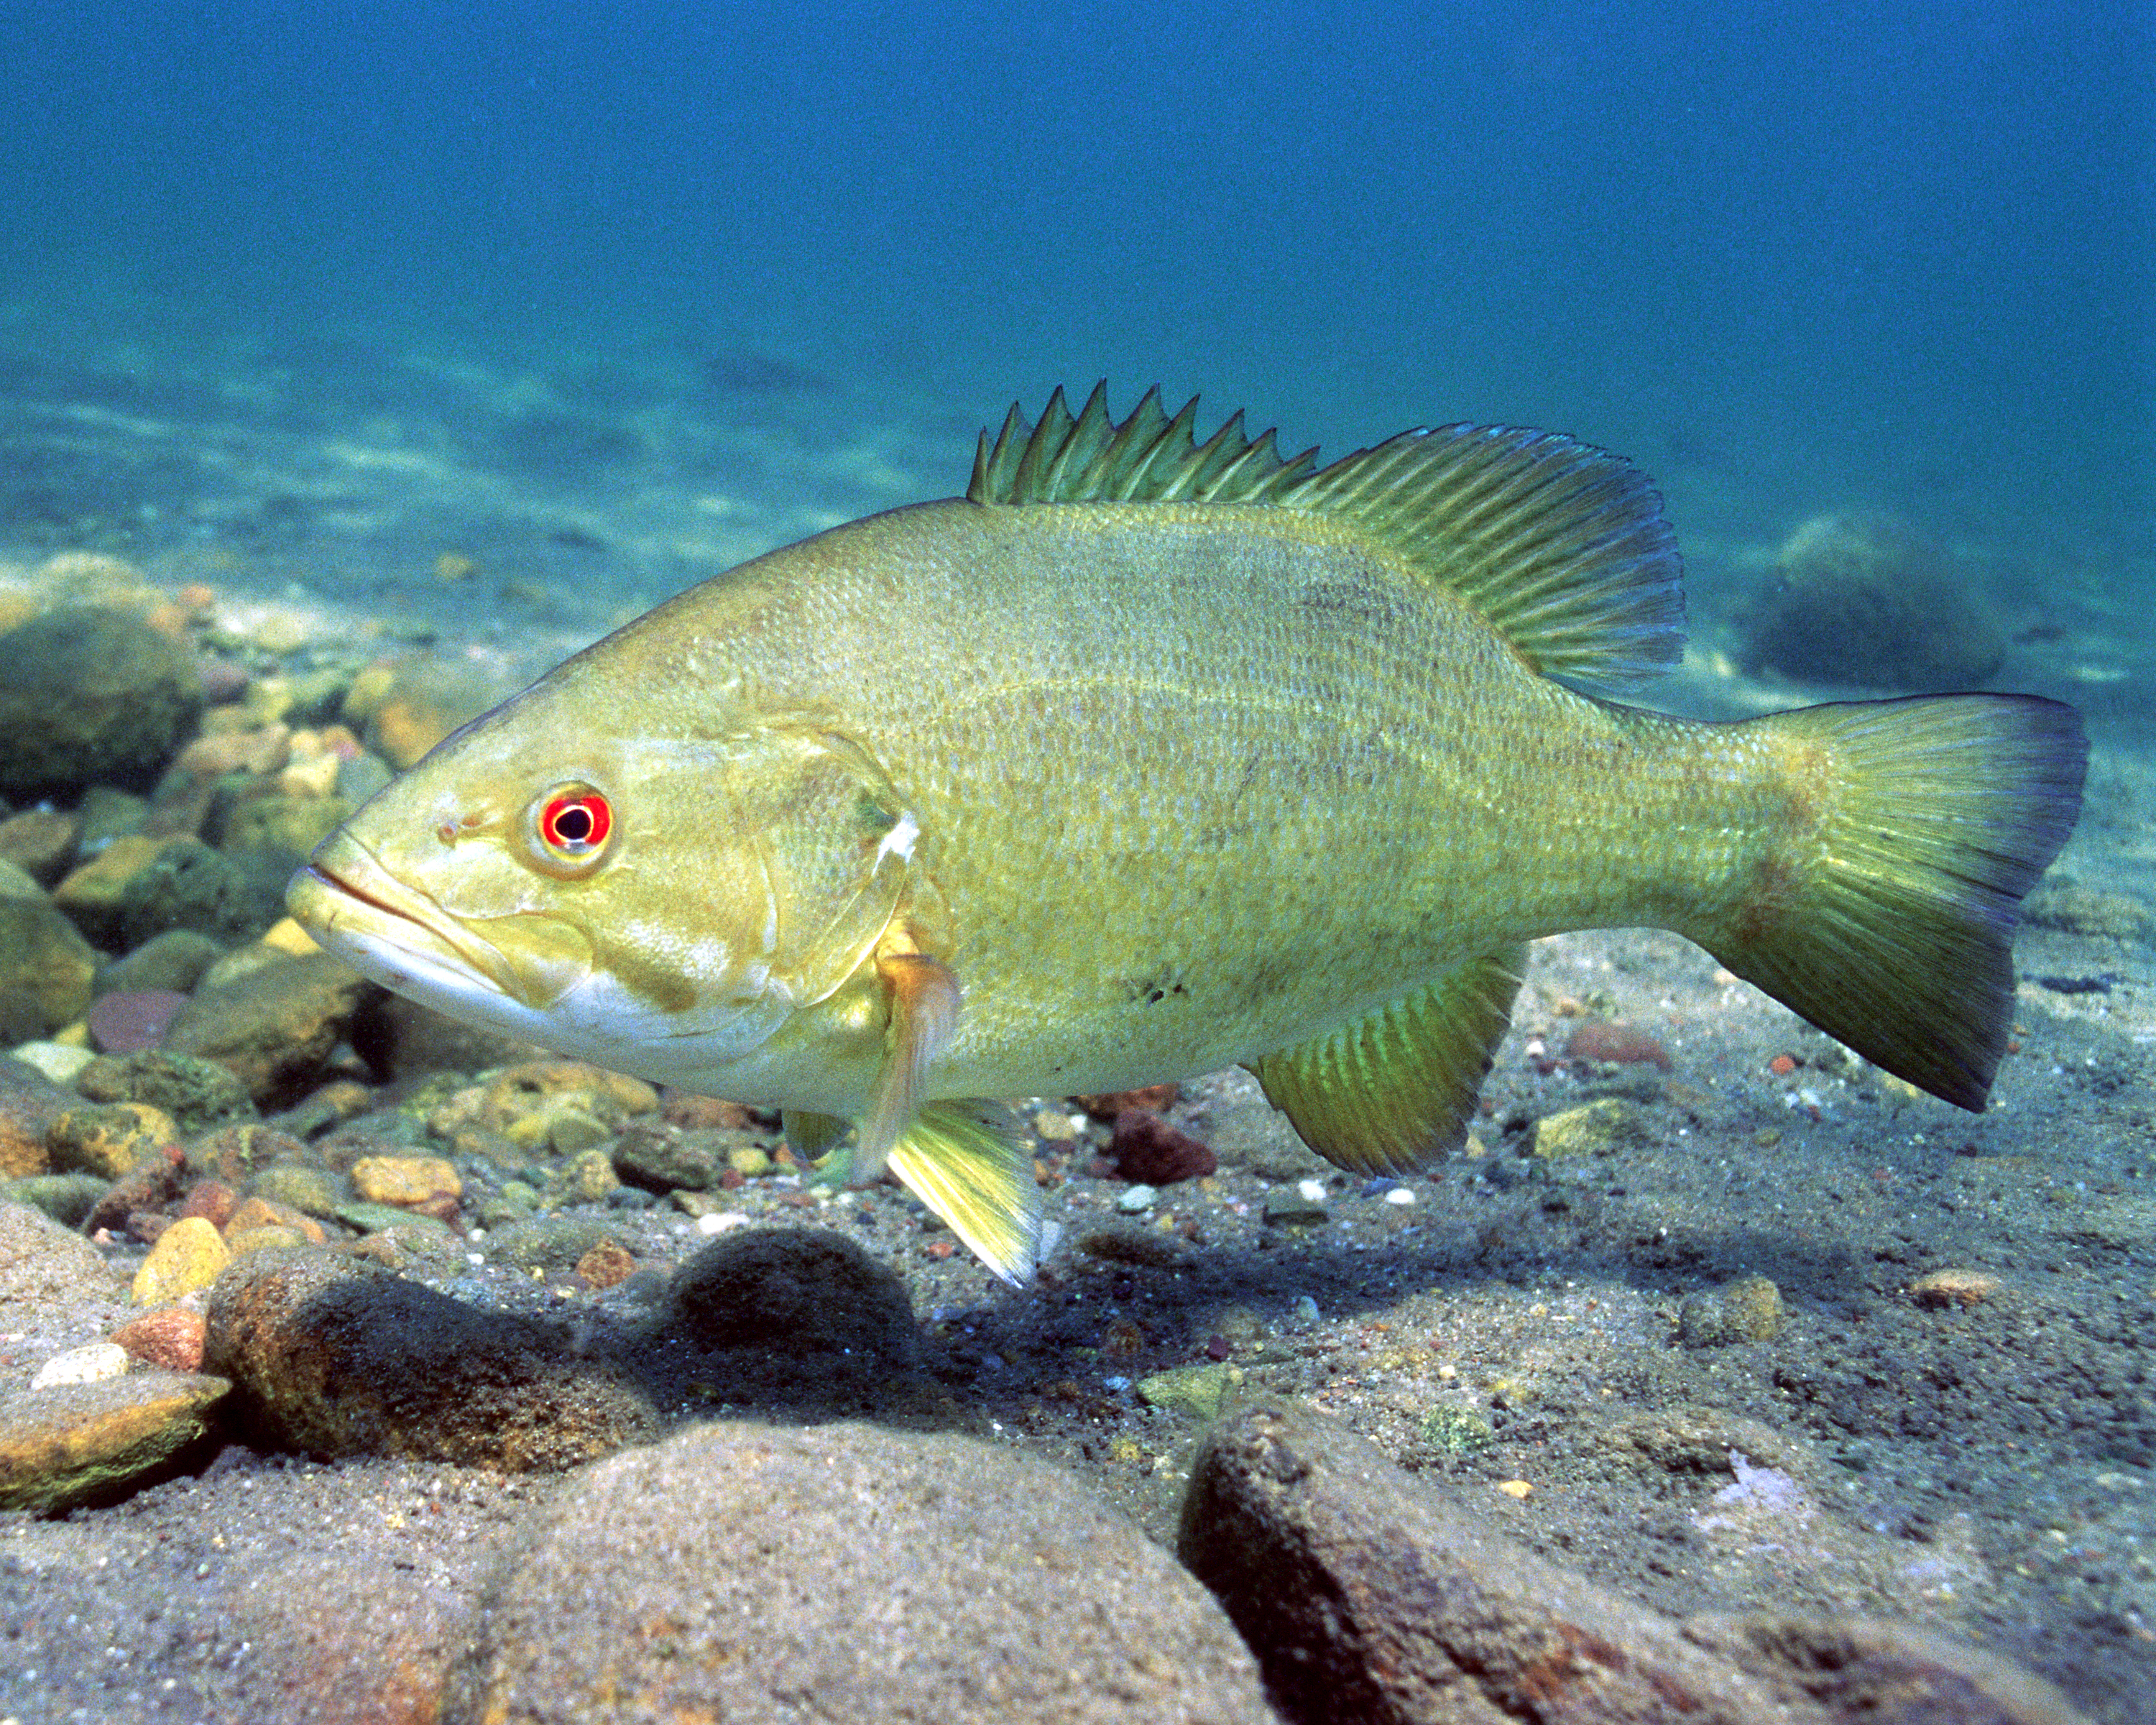 http://upload.wikimedia.org/wikipedia/commons/6/62/Micropterus_dolomieu.jpg